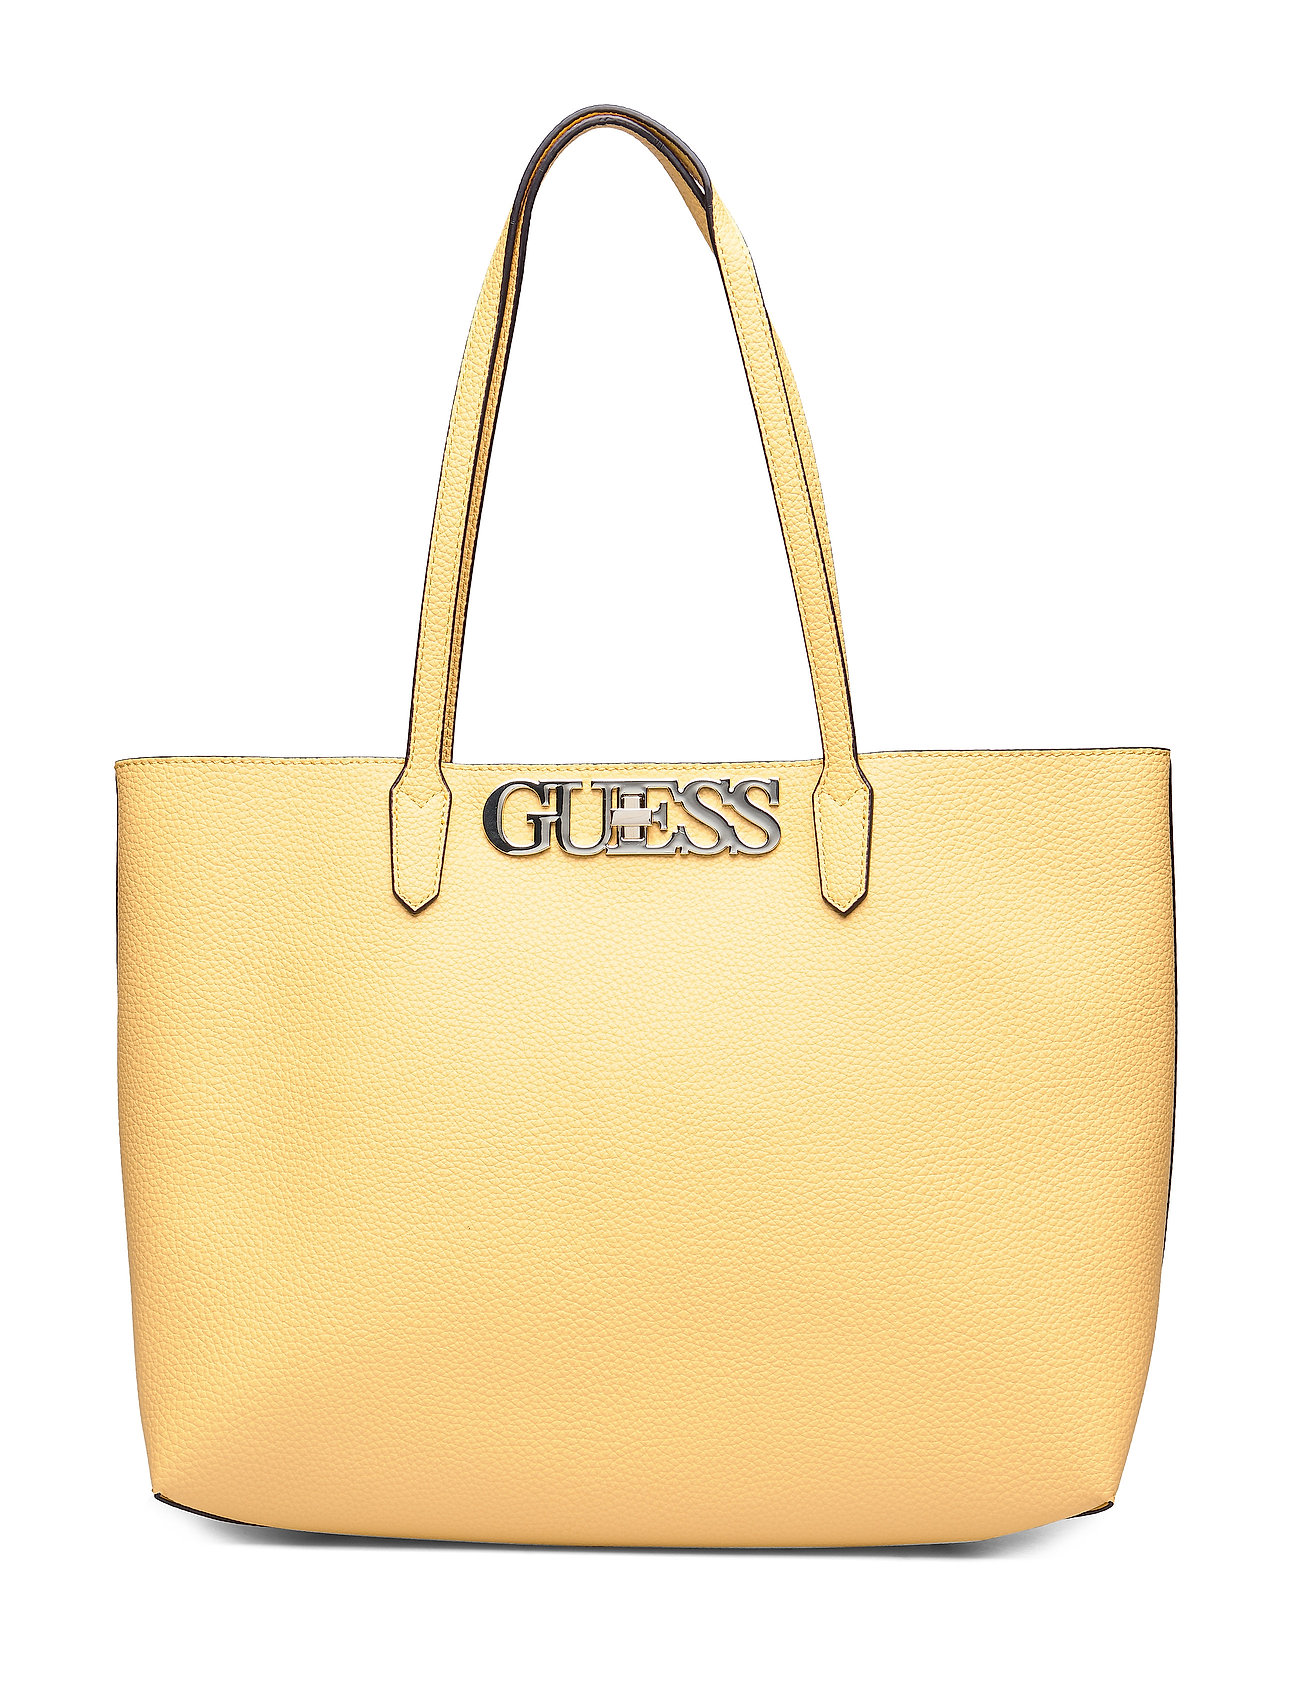 GUESS UPTOWN CHIC BARCELONA TOTE - YELLOW